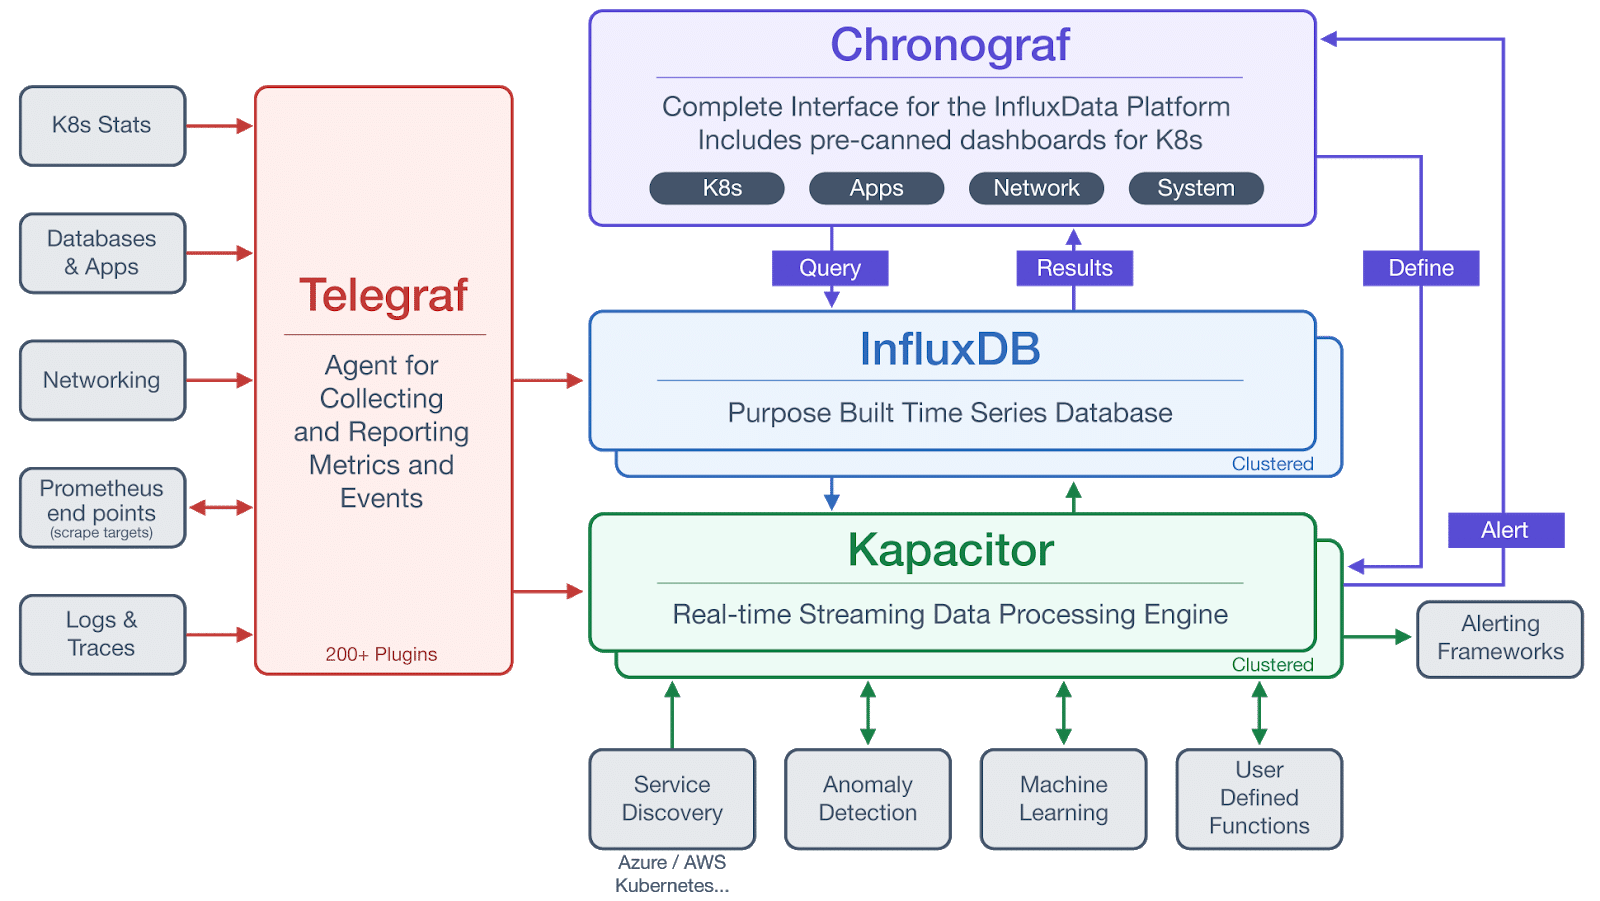 the architecture of the TICK Stack, including Telegraf, InfluxDB, Chronograf, and Kapacitor